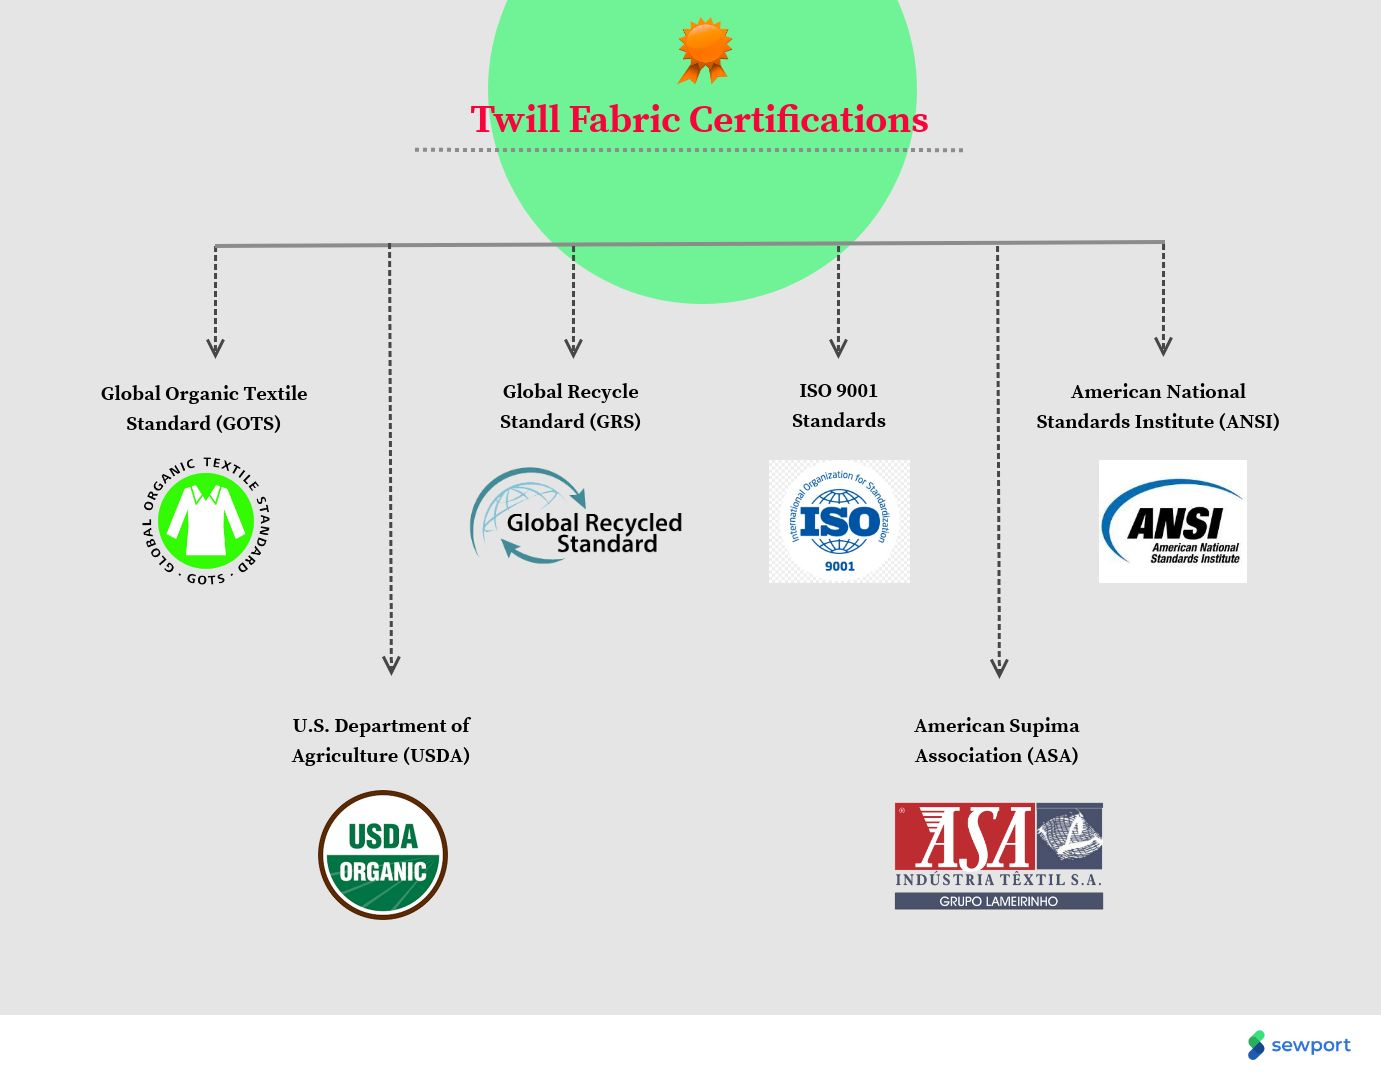 twill fabric certifications